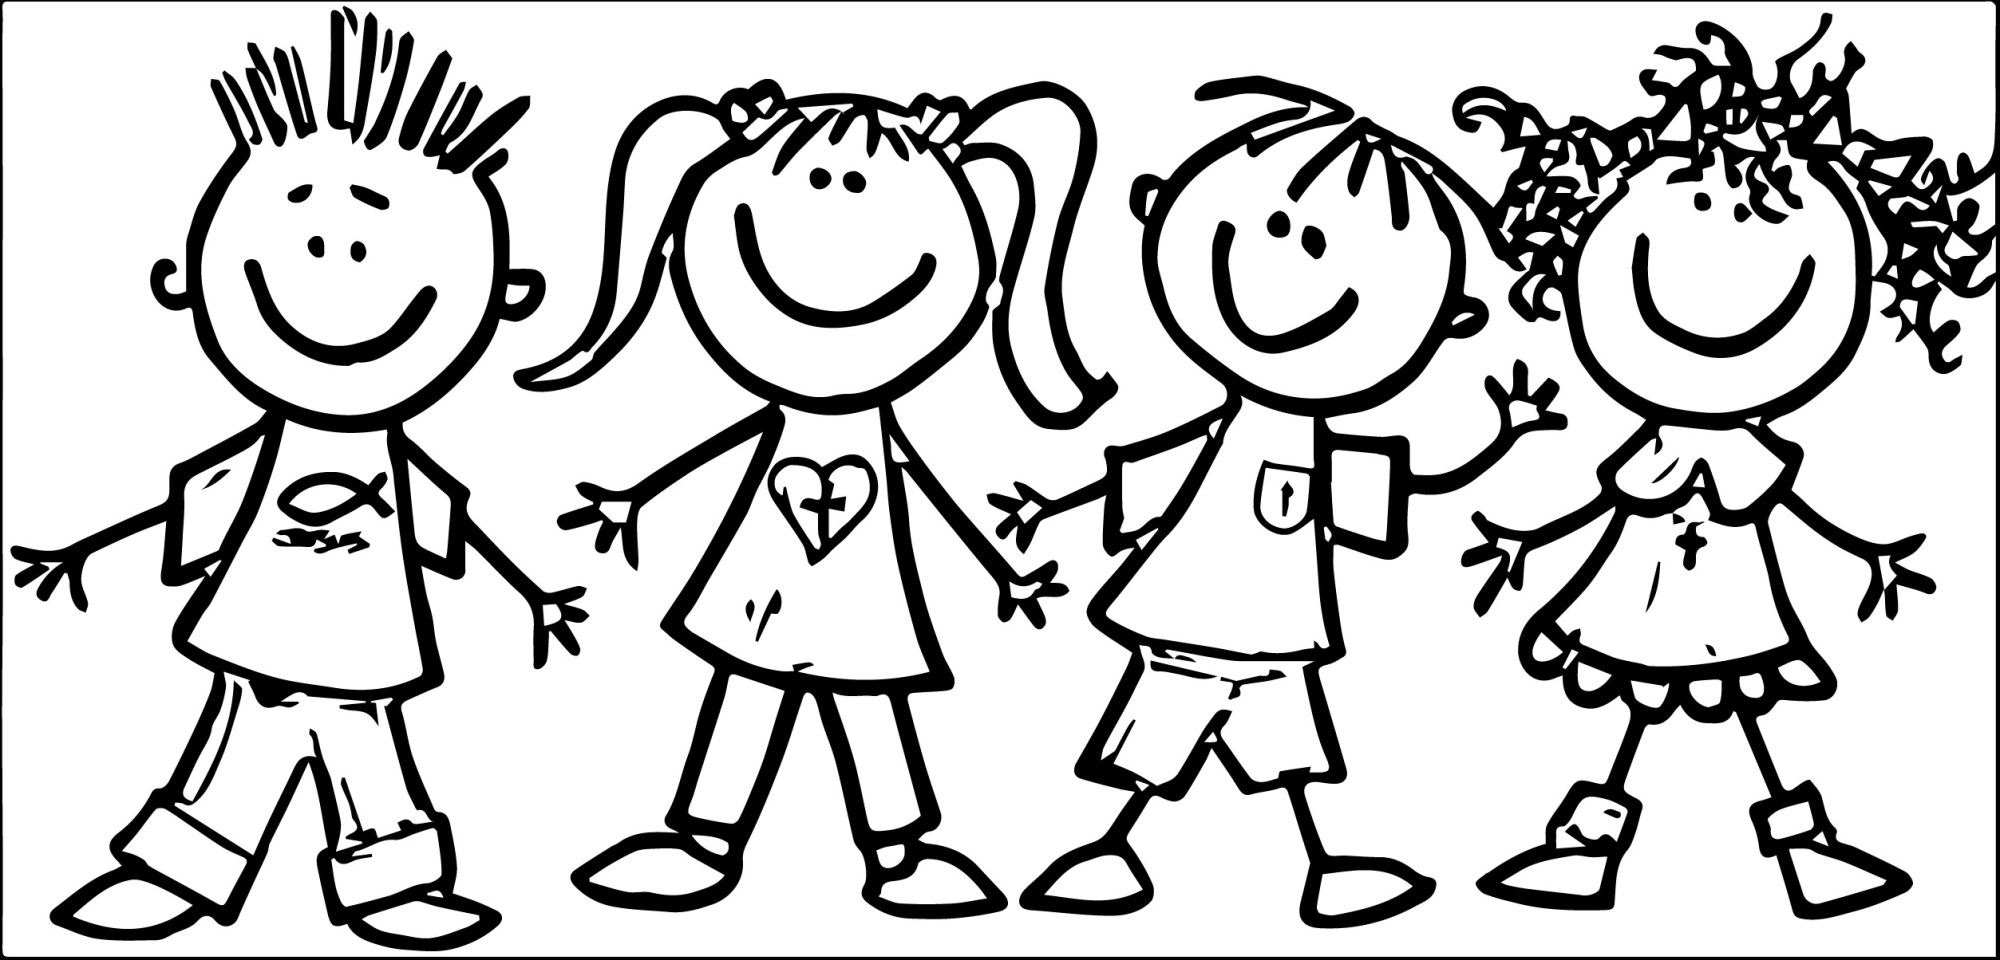 hight resolution of new friends clipart black and white design digital clipart collection